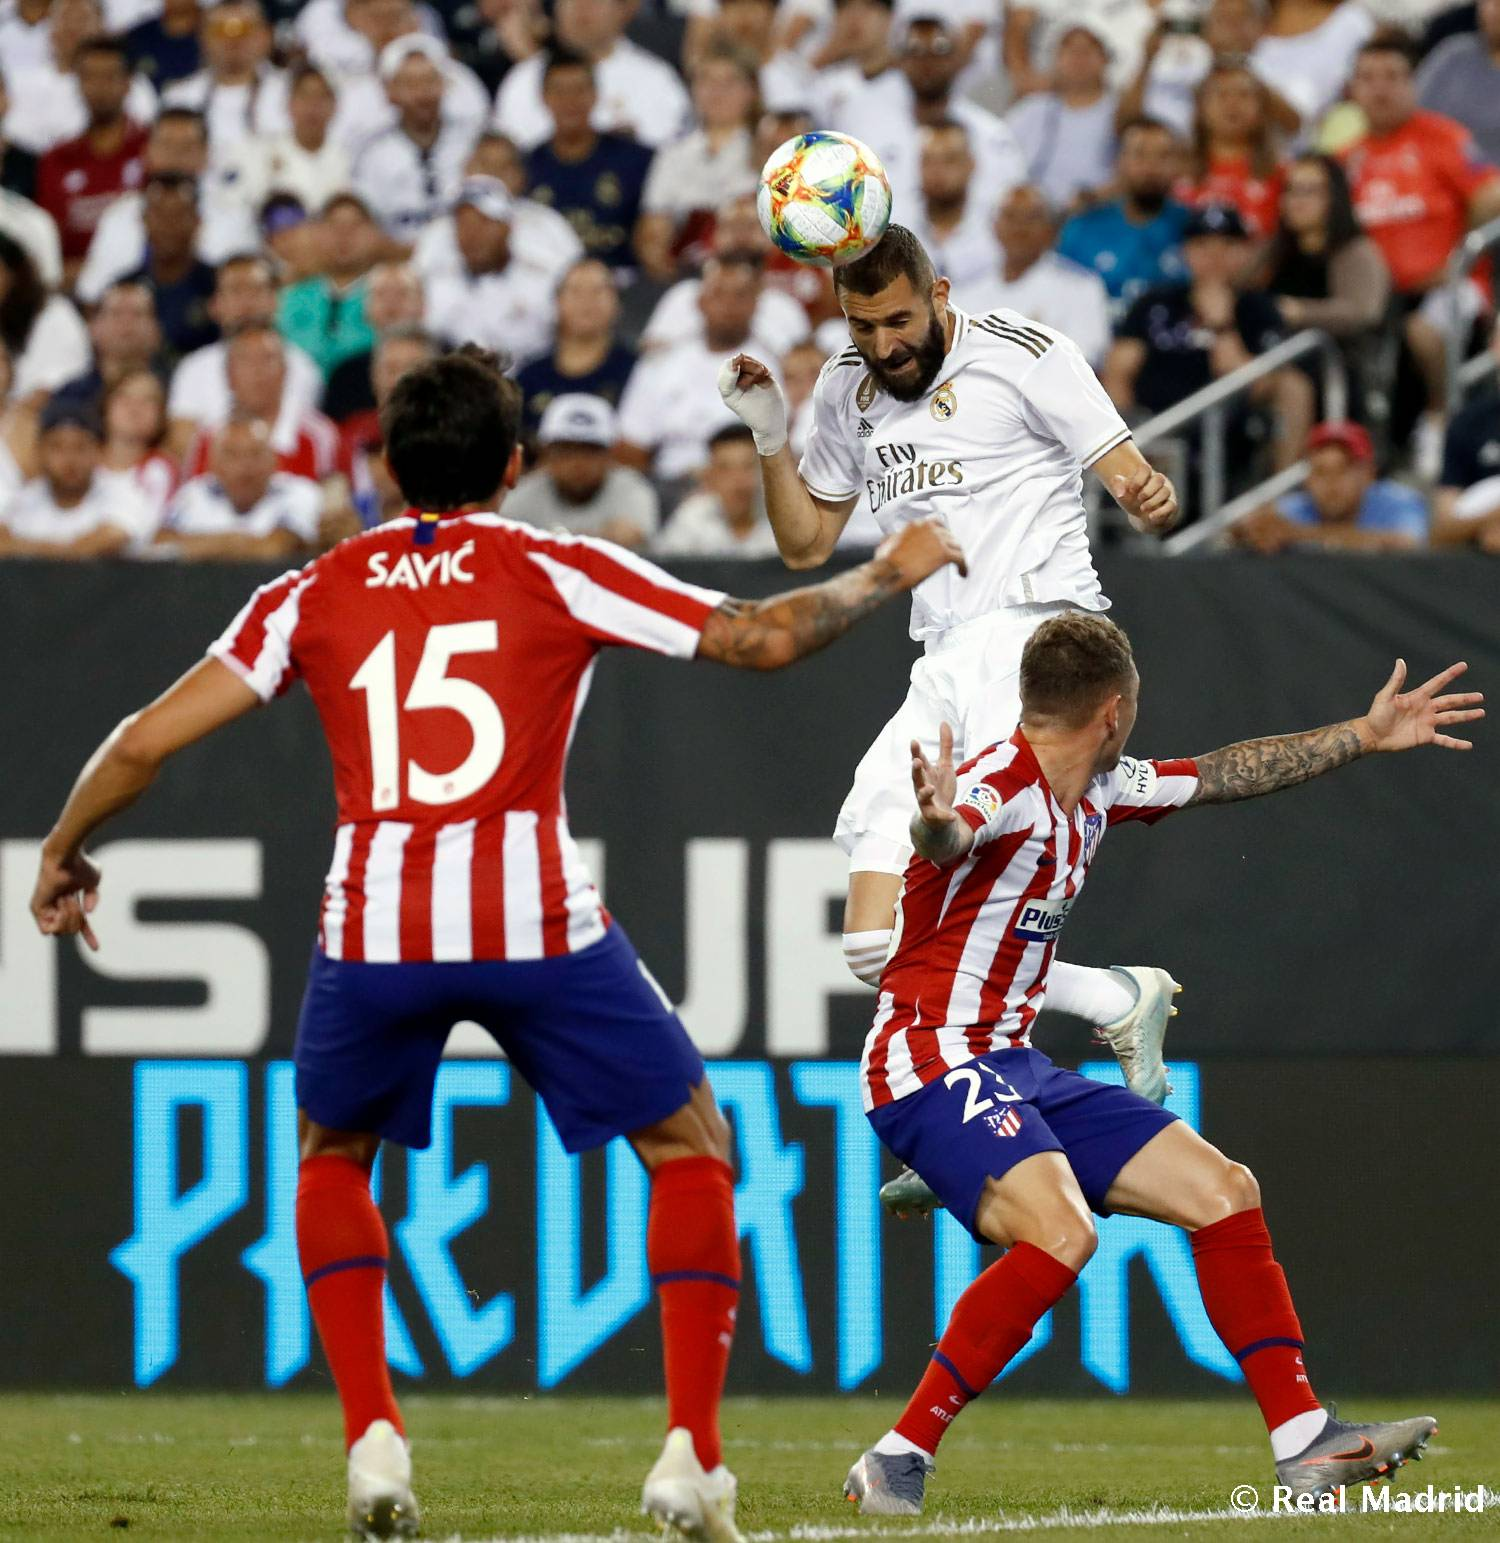 Real Madrid - Real Madrid-Atlético de Madrid - 27-07-2019